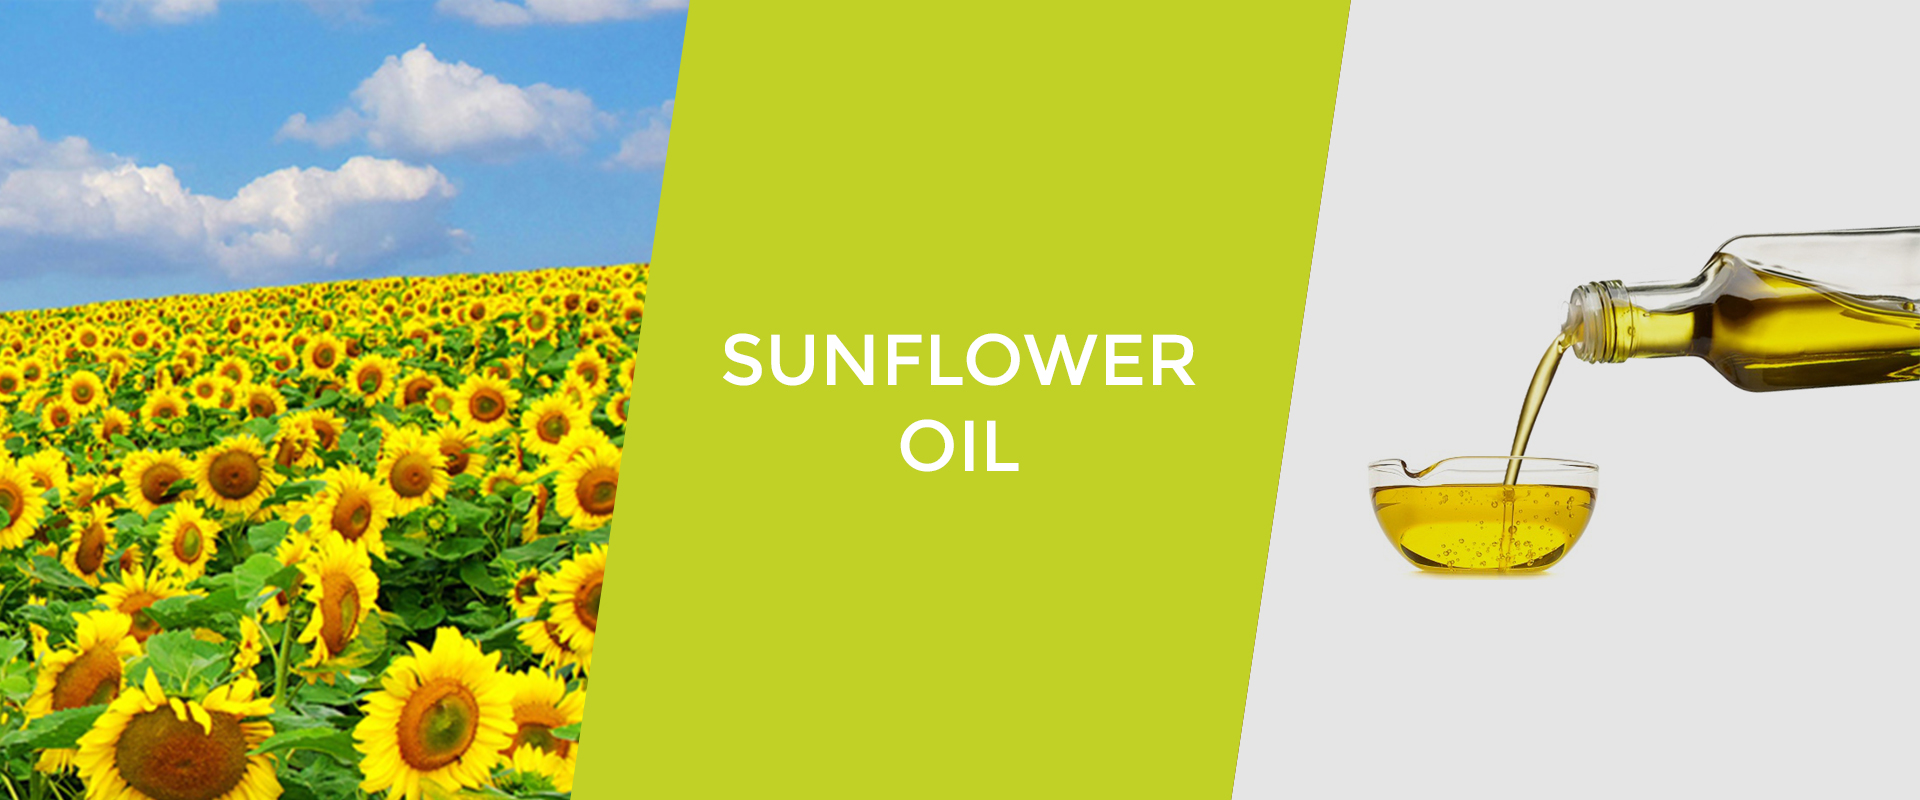 sunflower-oil-welcome-broker